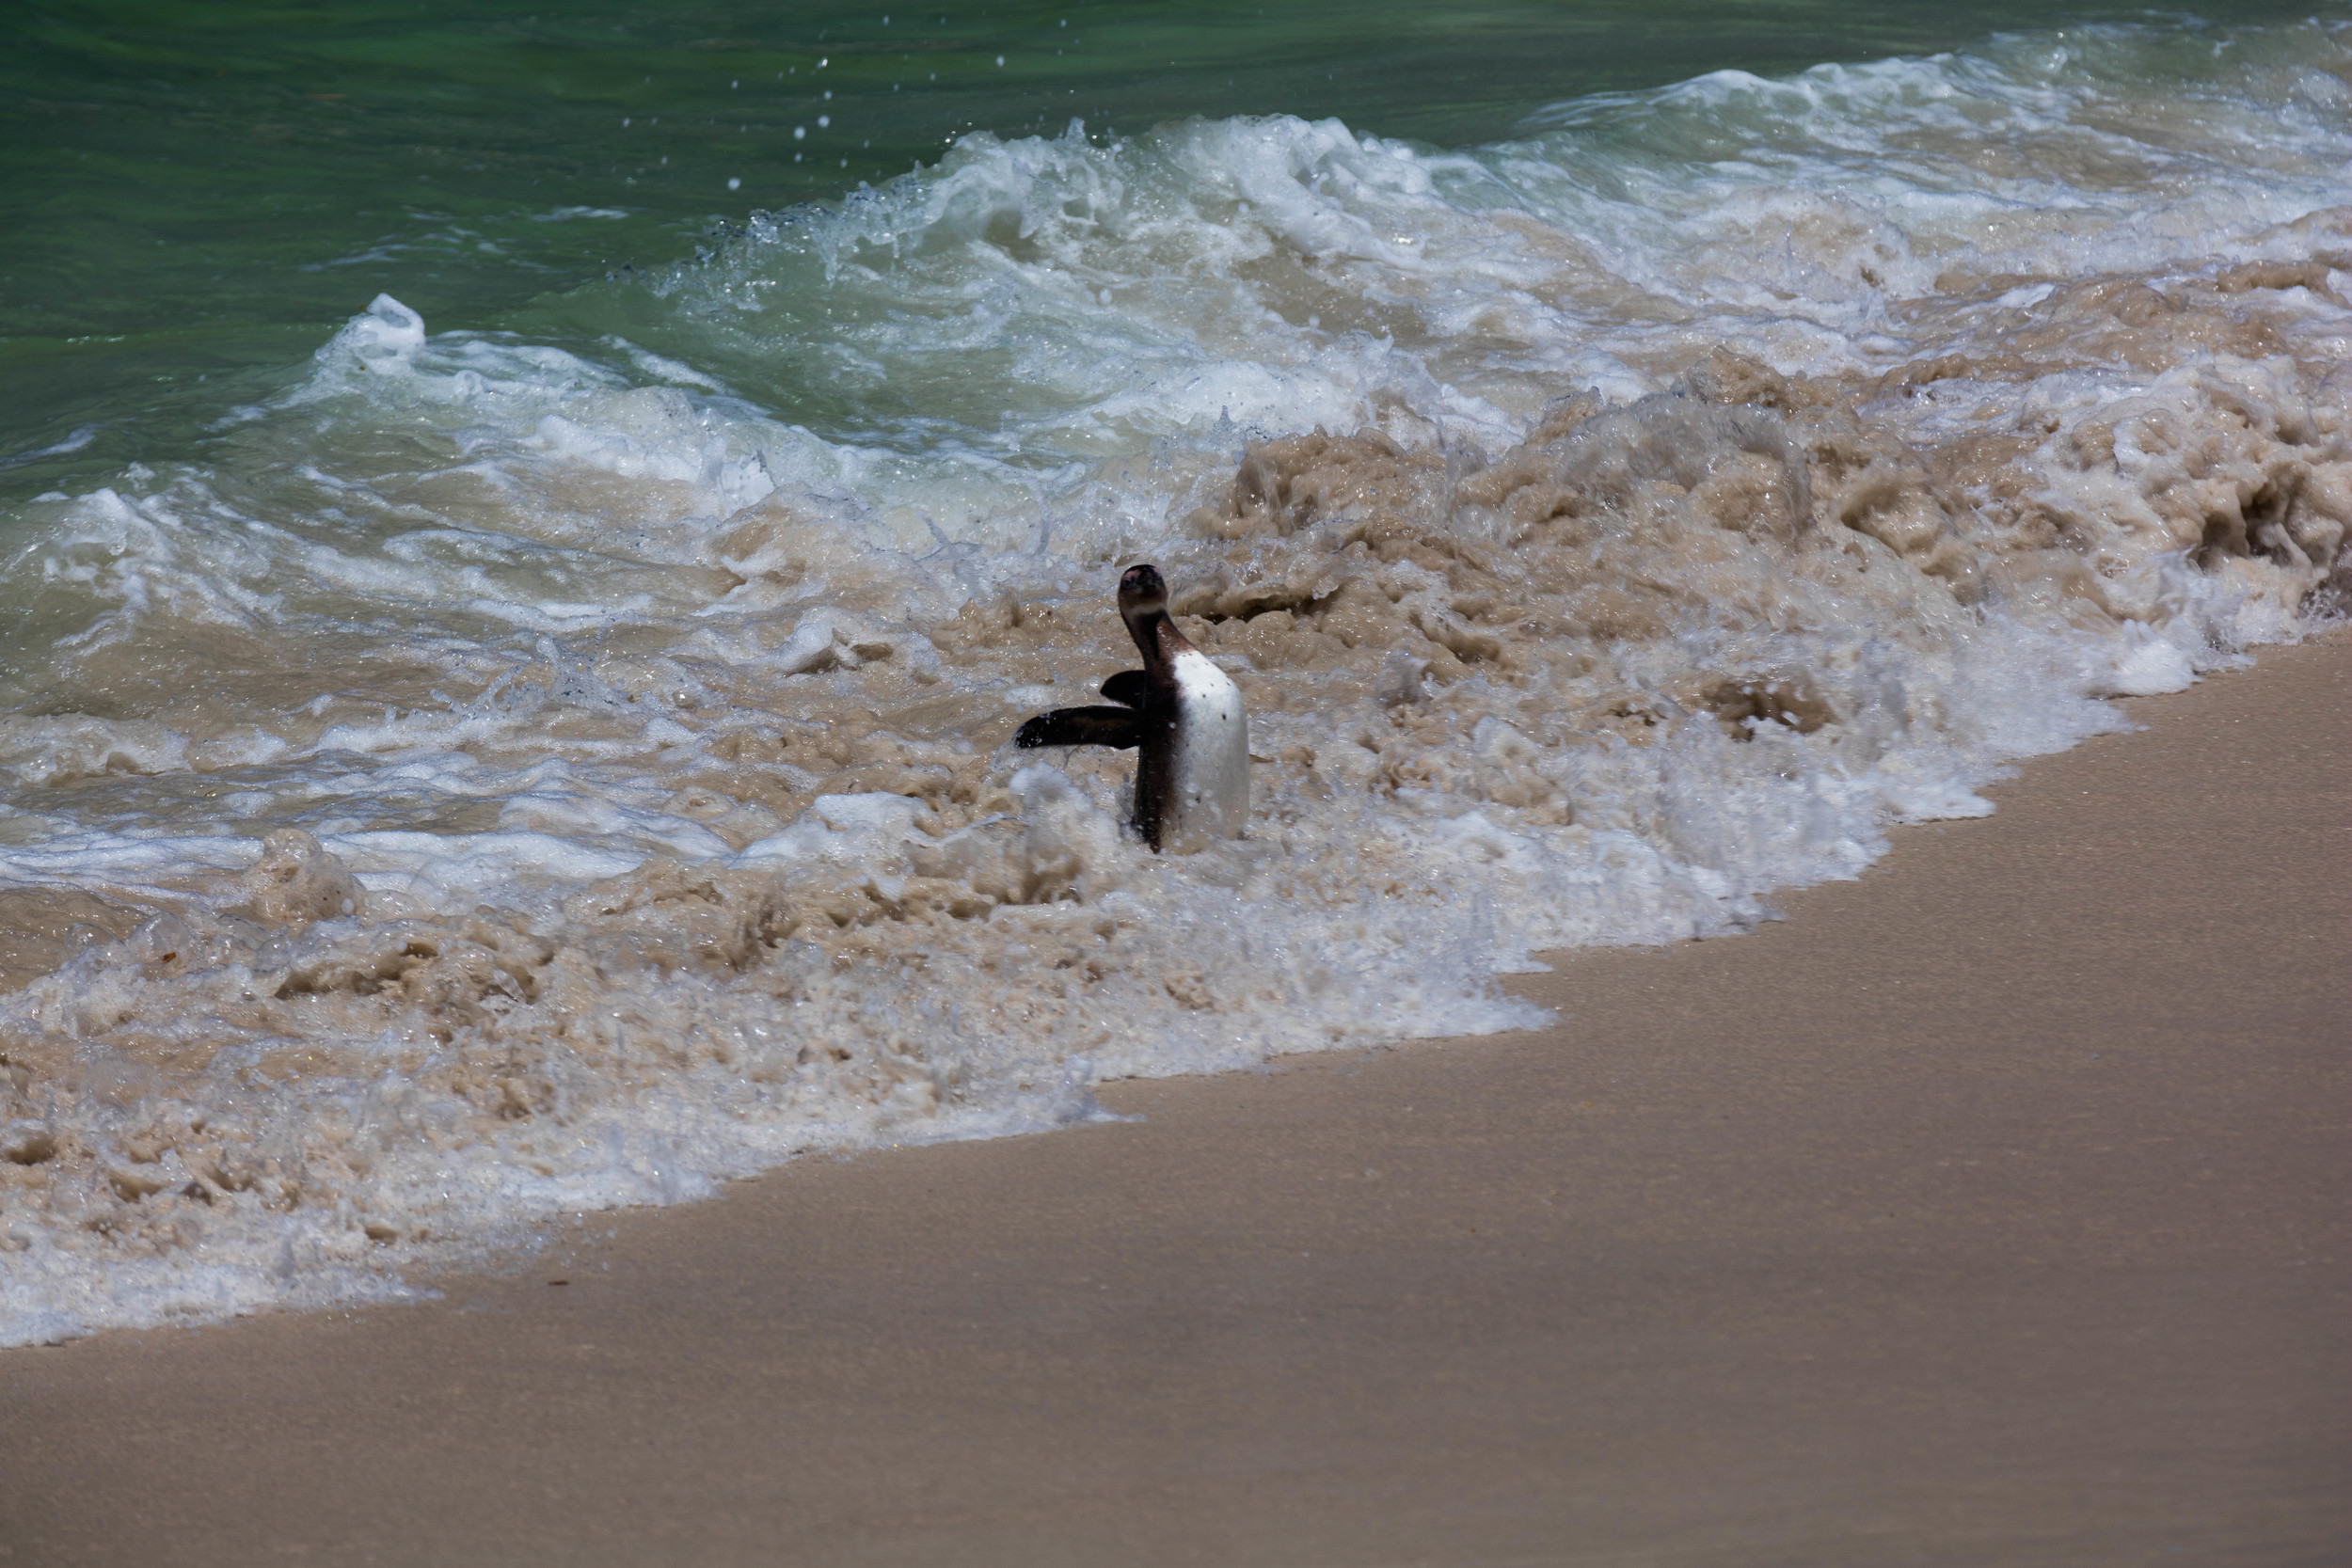 Penguin getting knocked over by a wave, South Africa